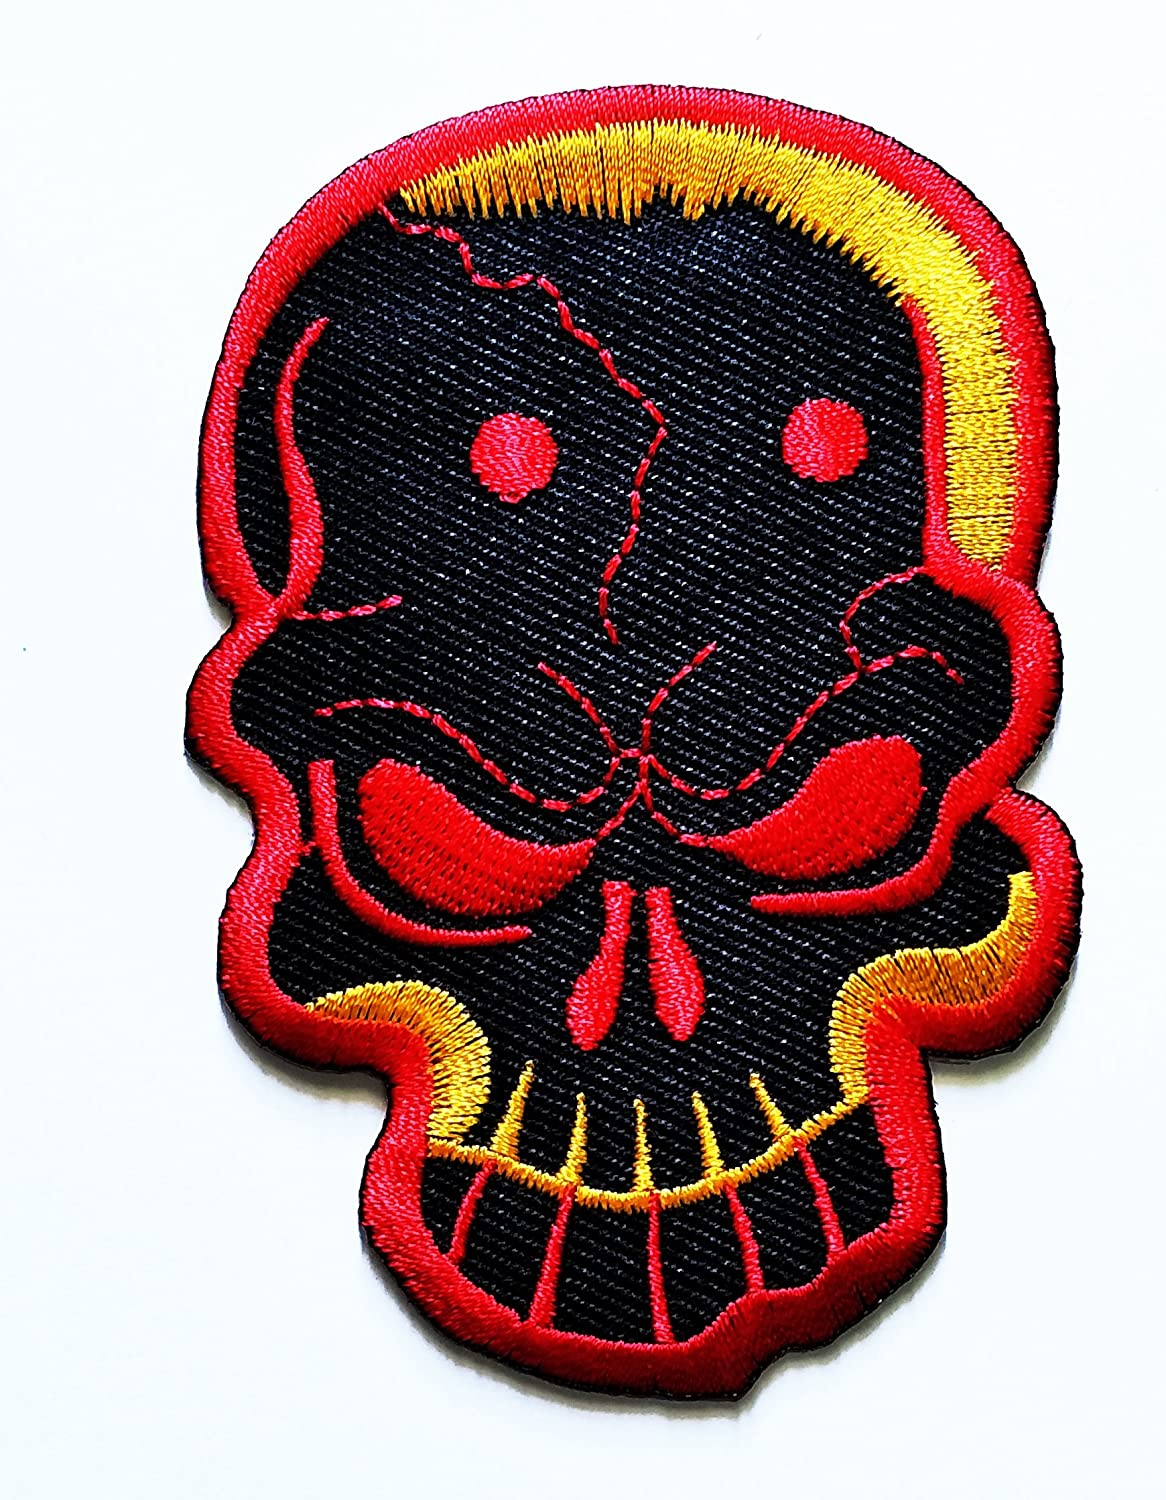 HHO black Yellow Red SKULL Bone Hardcore Patch Embroidered DIY Patches Cute Applique Sew Iron on Kids Craft Patch for Bags Jackets Jeans Clothes